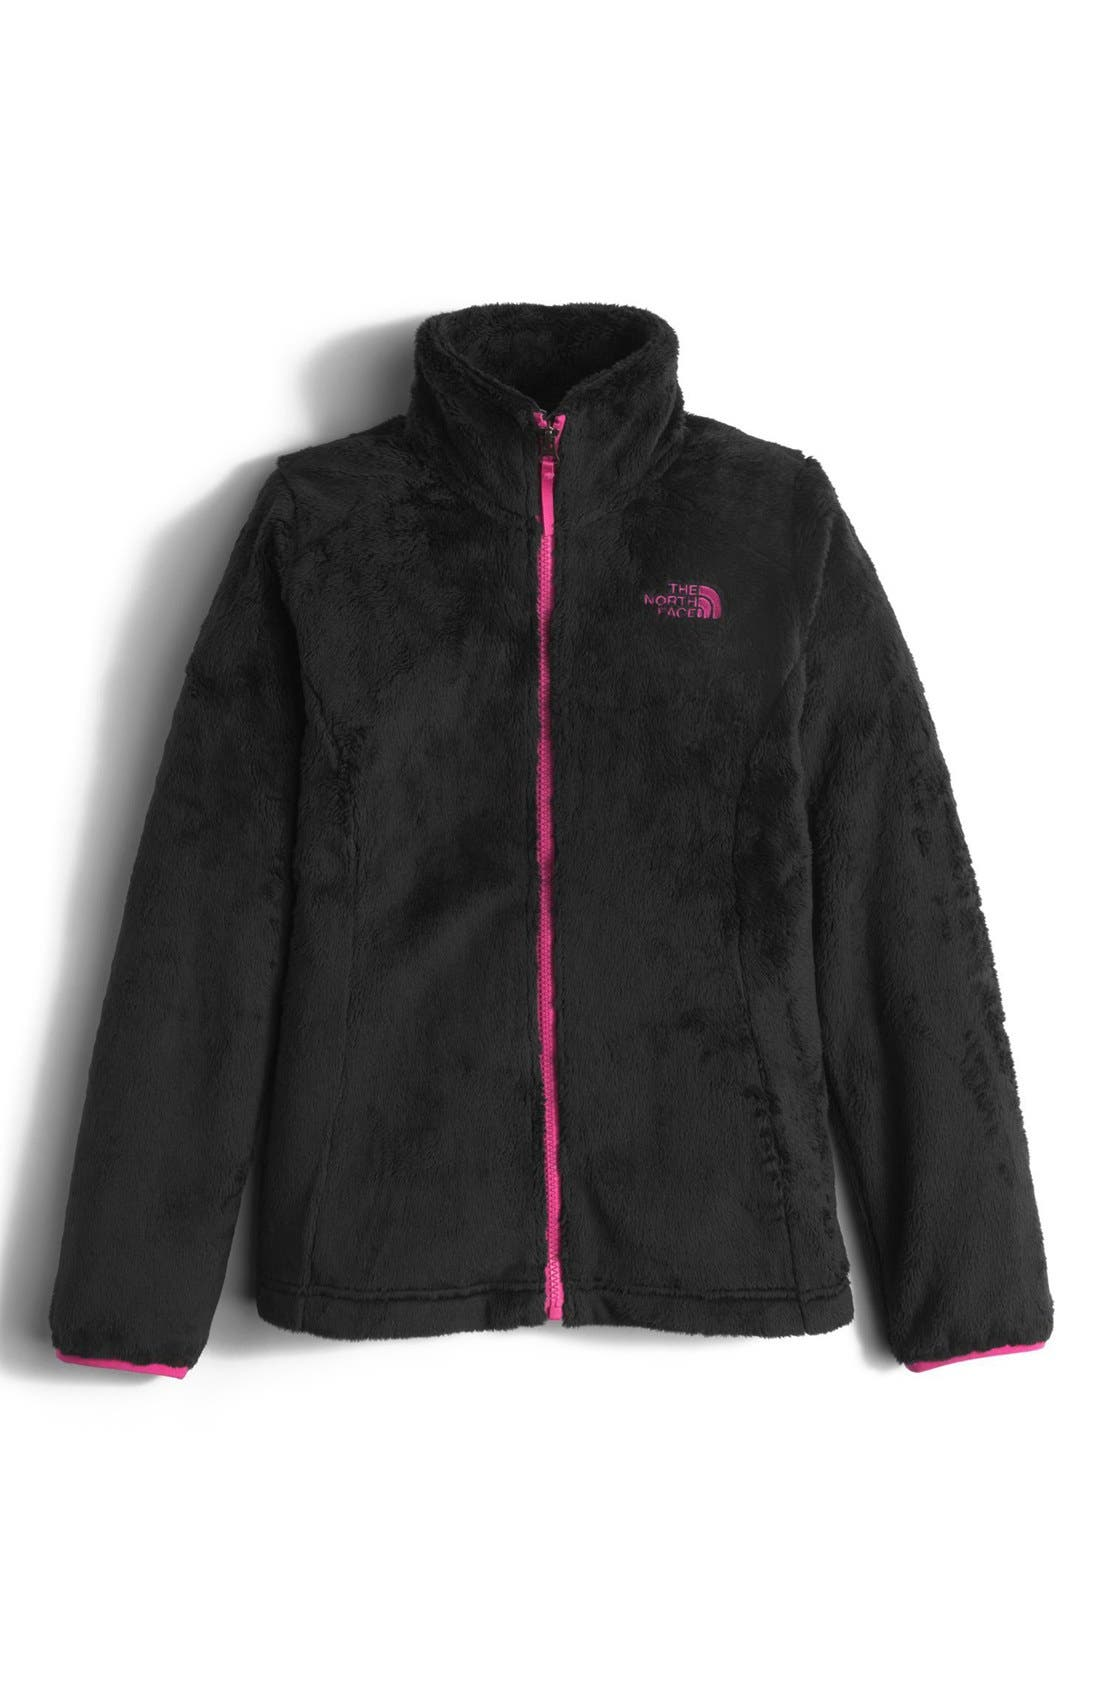 Osolita TriClimate<sup>®</sup> 3-in-1 Jacket,                             Alternate thumbnail 4, color,                             021